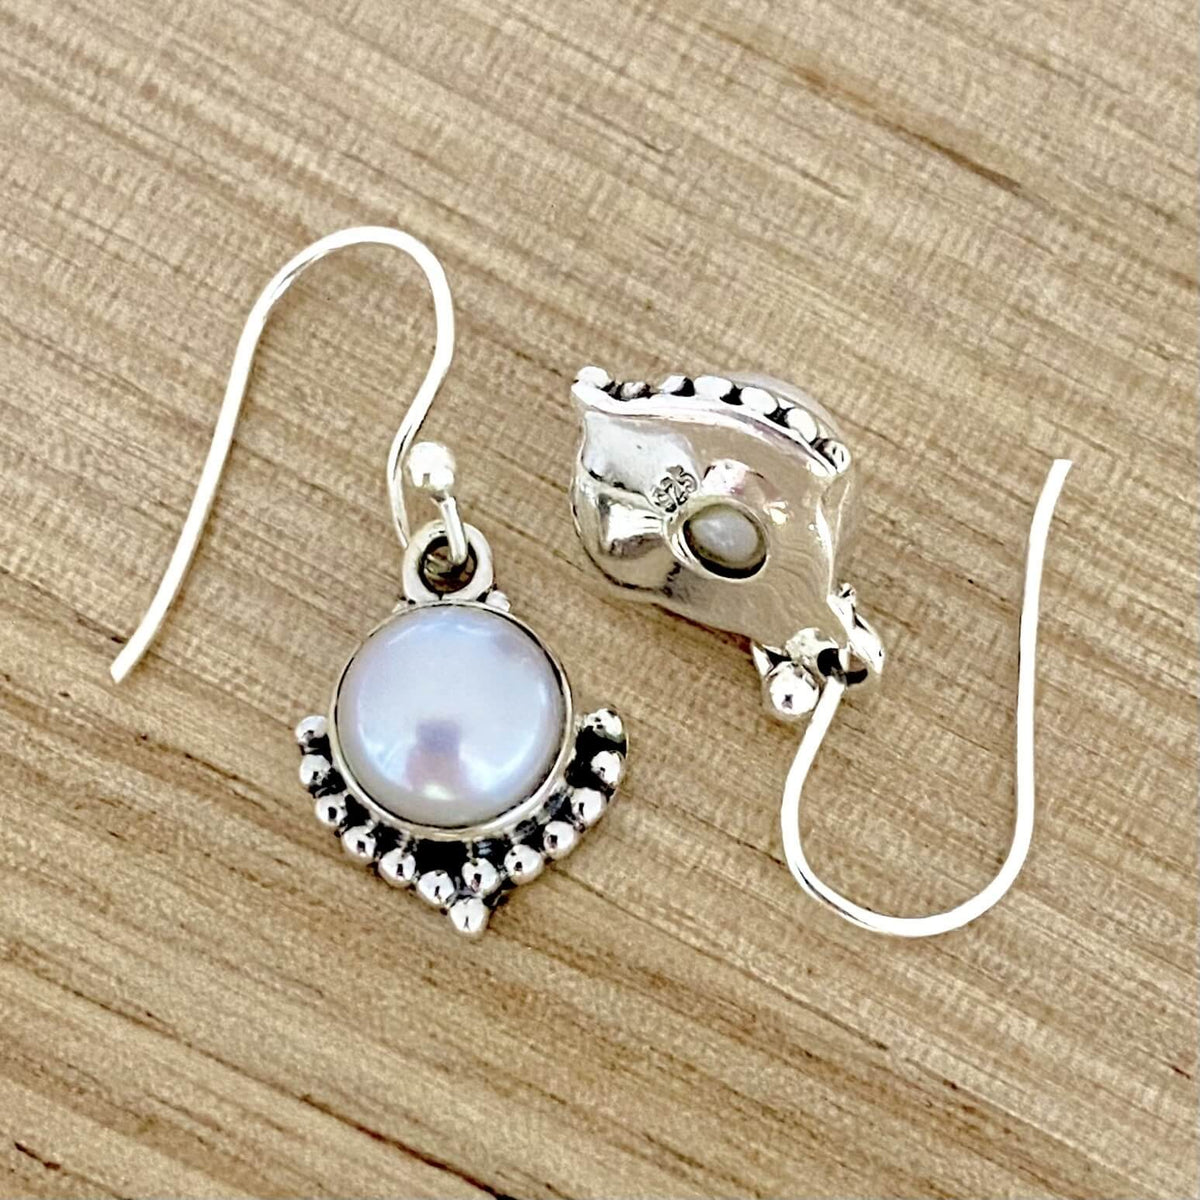 Laihas Gypsy Solitude Pearl Earrings - Laihas Bohemian Dreaming